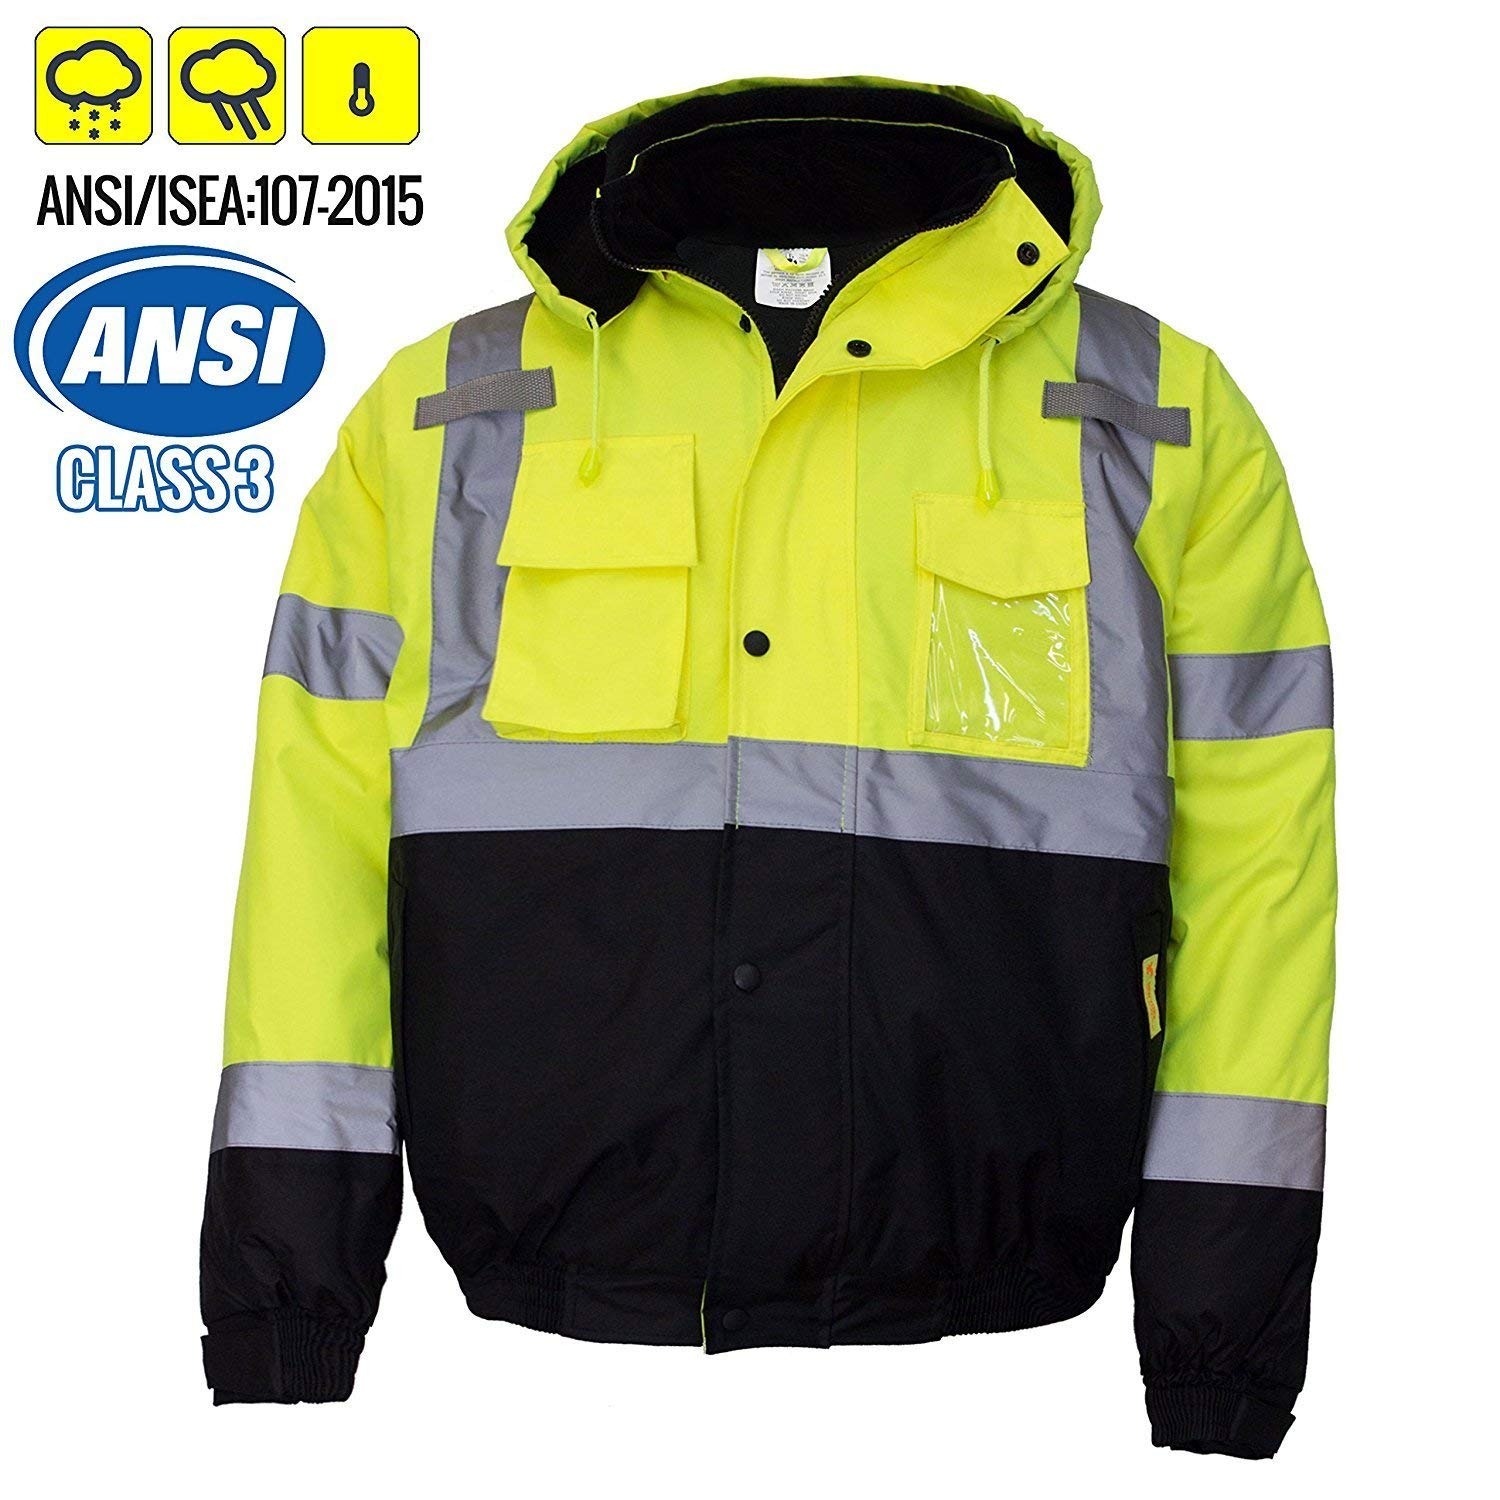 New York Hi-Viz Workwear WJ9012-L Men's ANSI Class 3 High Visibility Bomber Safety Jacket, Waterproof (Large, Lime) by RK Safety